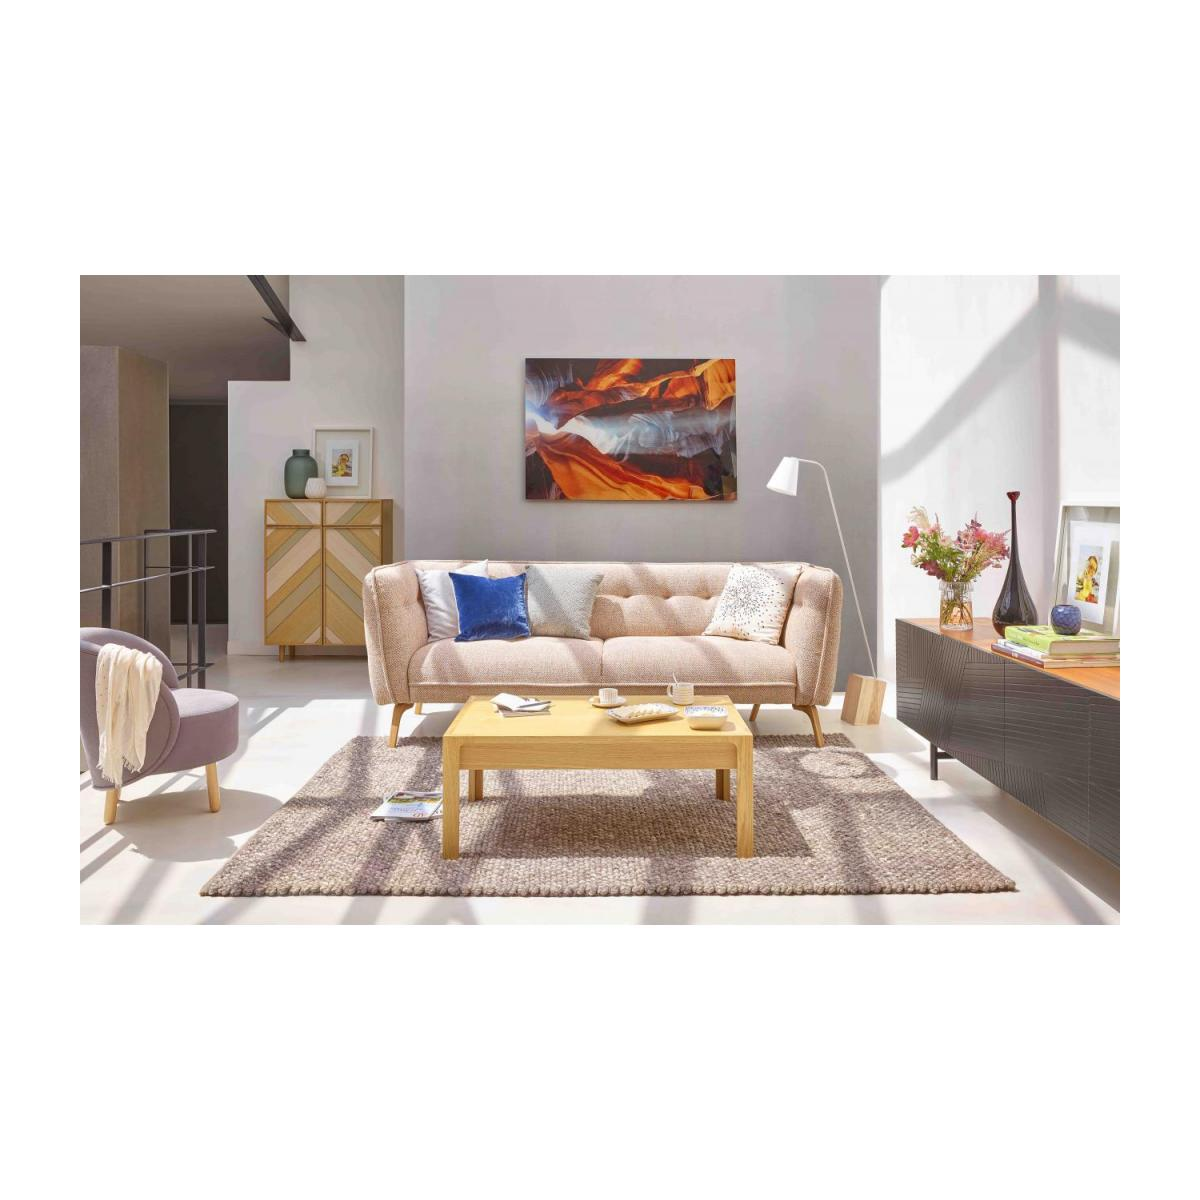 3 seater sofa in Lecce fabric, blue reef and natural oak feet n°4